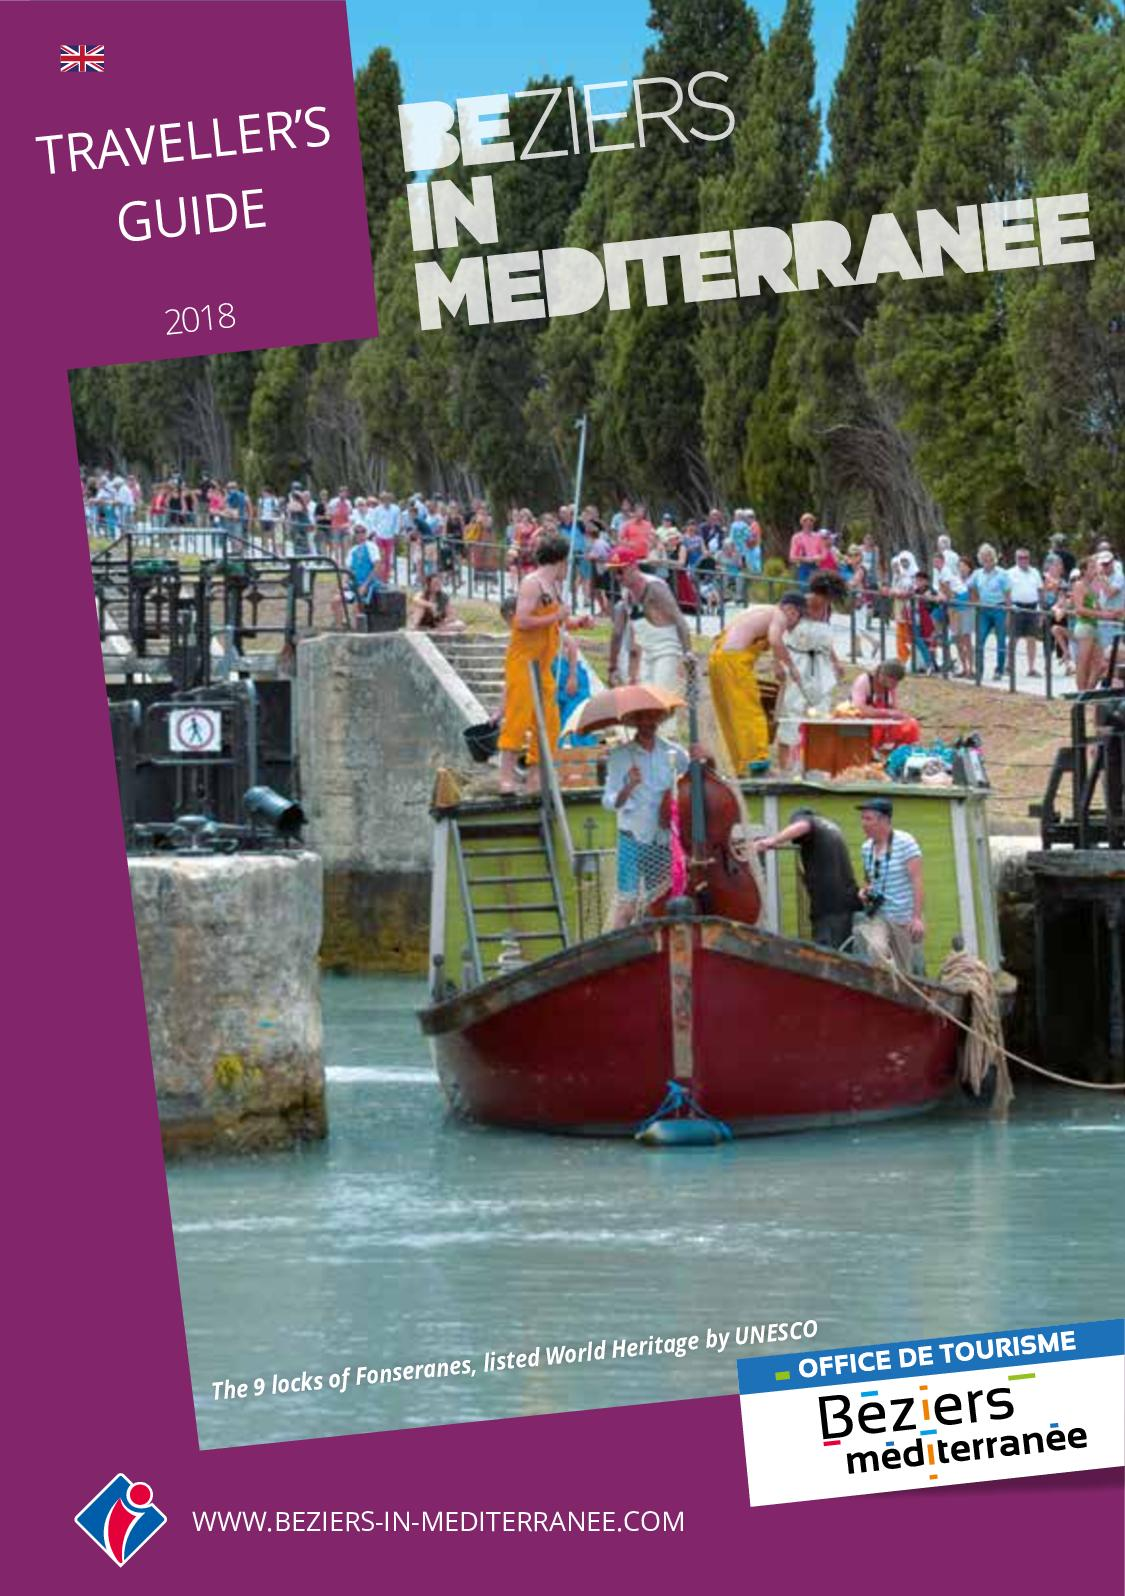 Made In Mediterranee Terrasse Du Port Calaméo Traveller S Guide 2018